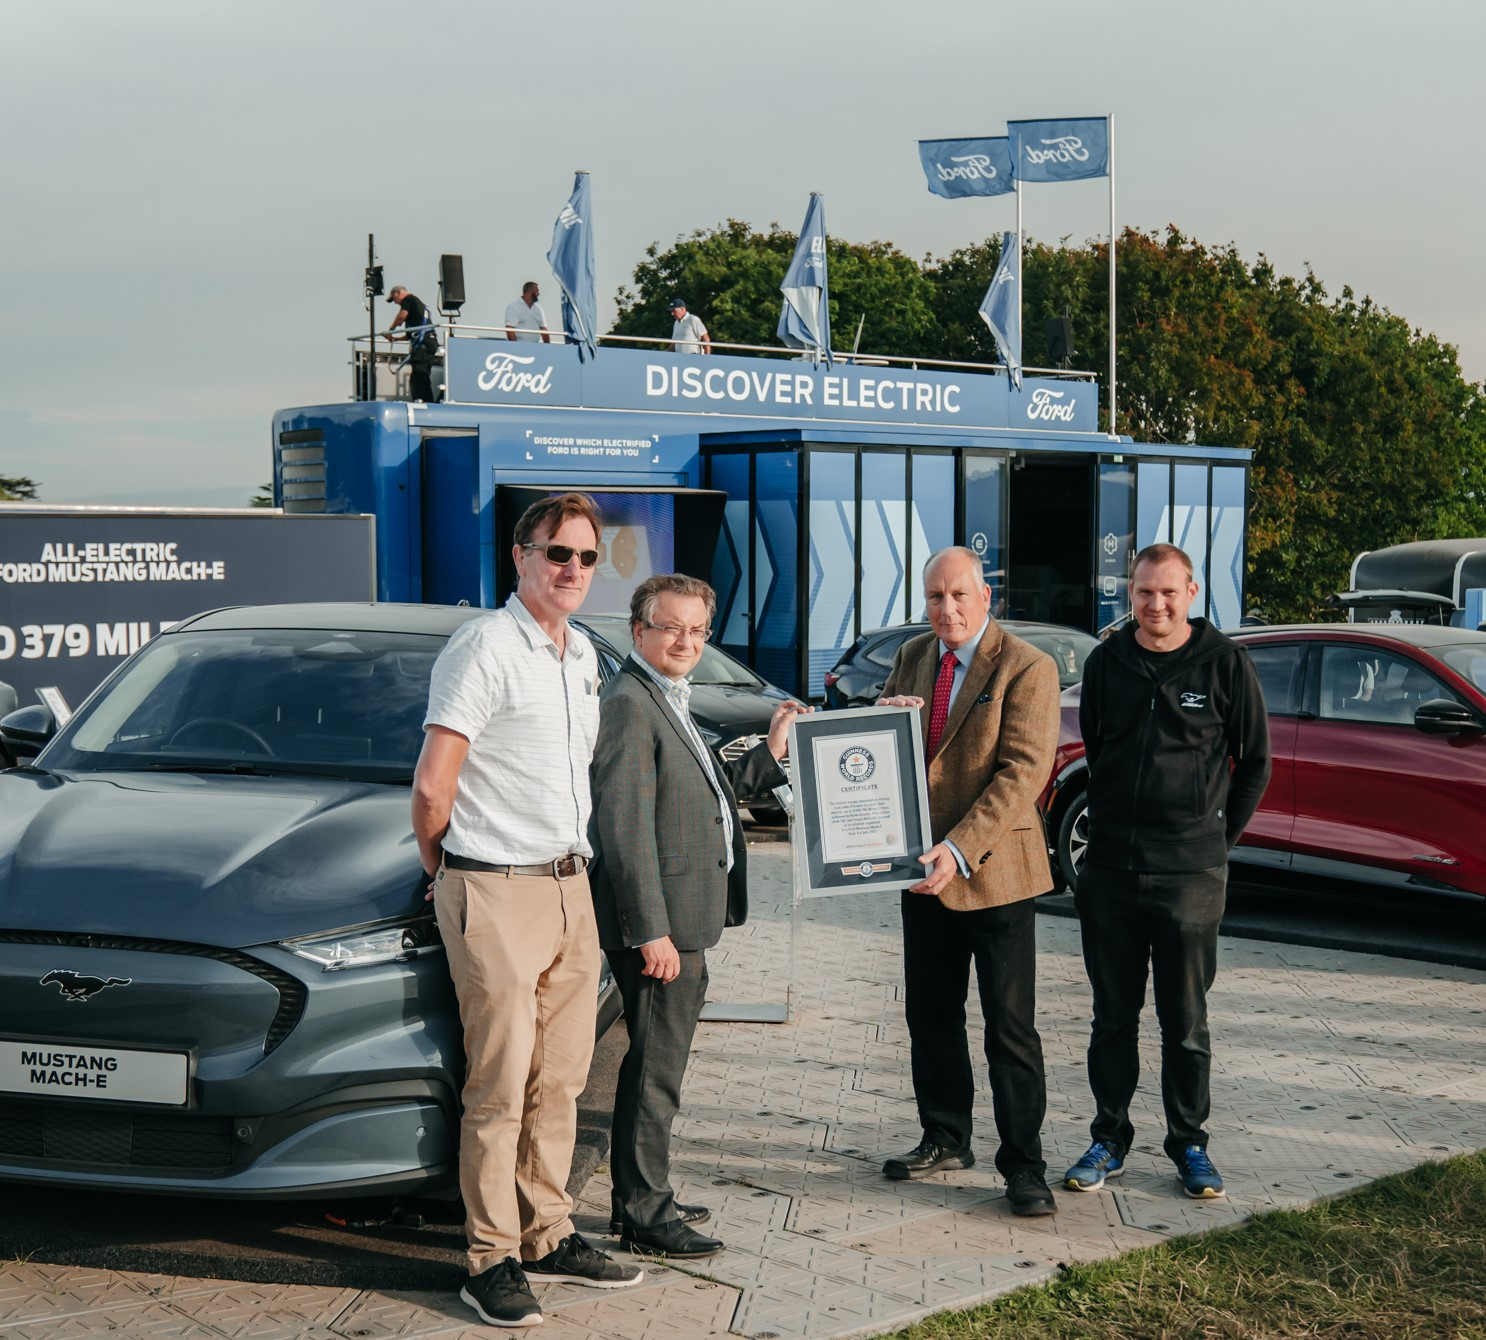 Ford's Tim Nicklin receives record certificate from left to right Mustang Mach-E drivers Fergal McGrath Paul Clifton and Kevin Booker 2